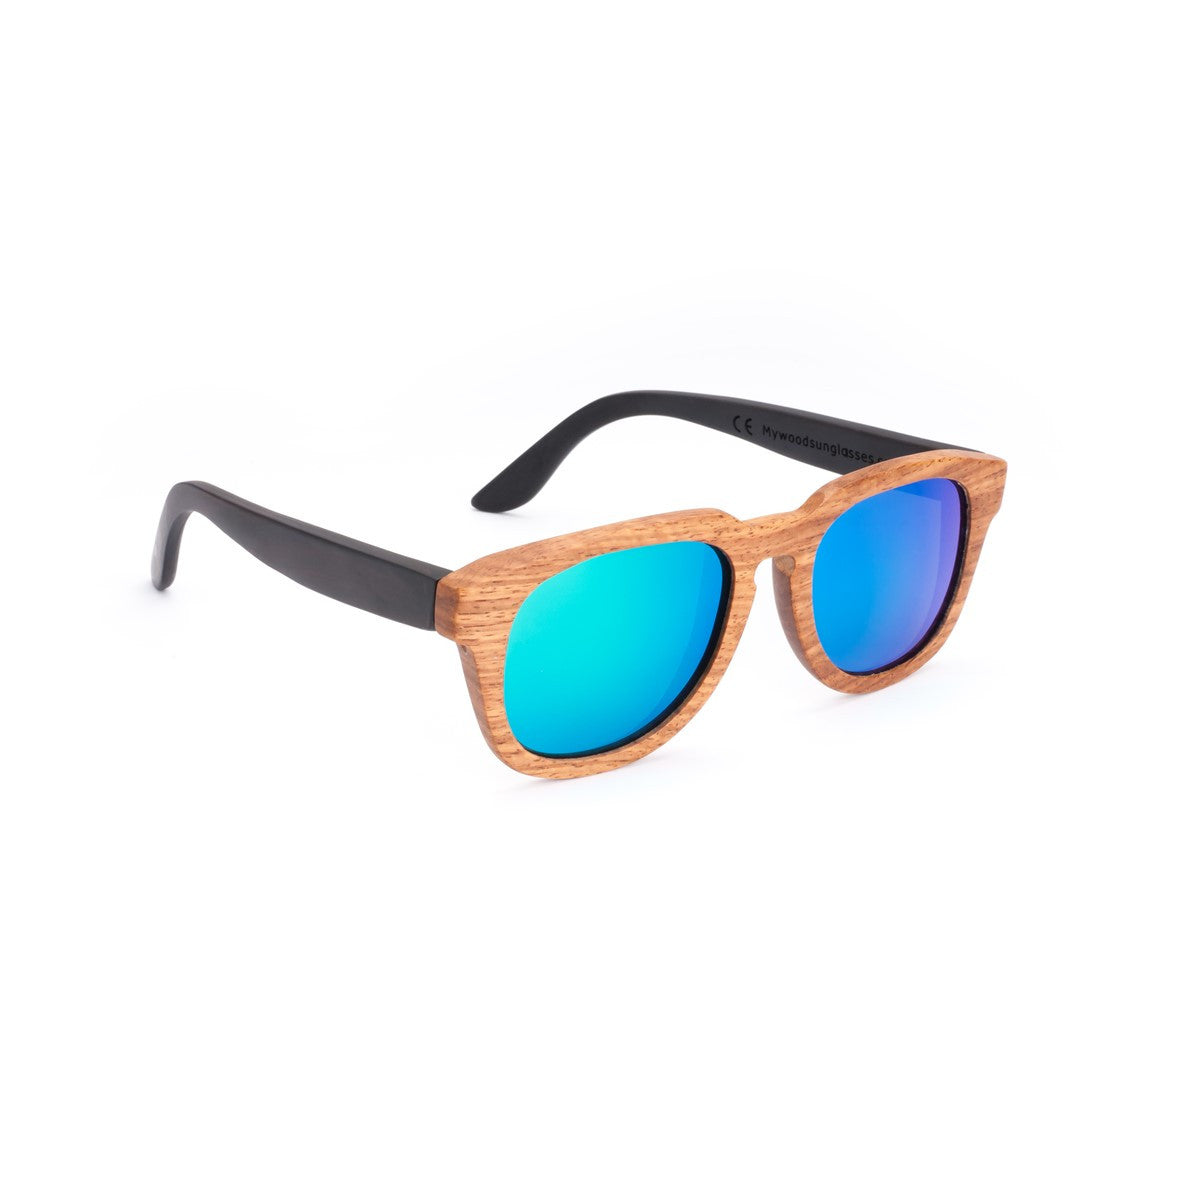 Wooden Sunglasses Lugny I brown